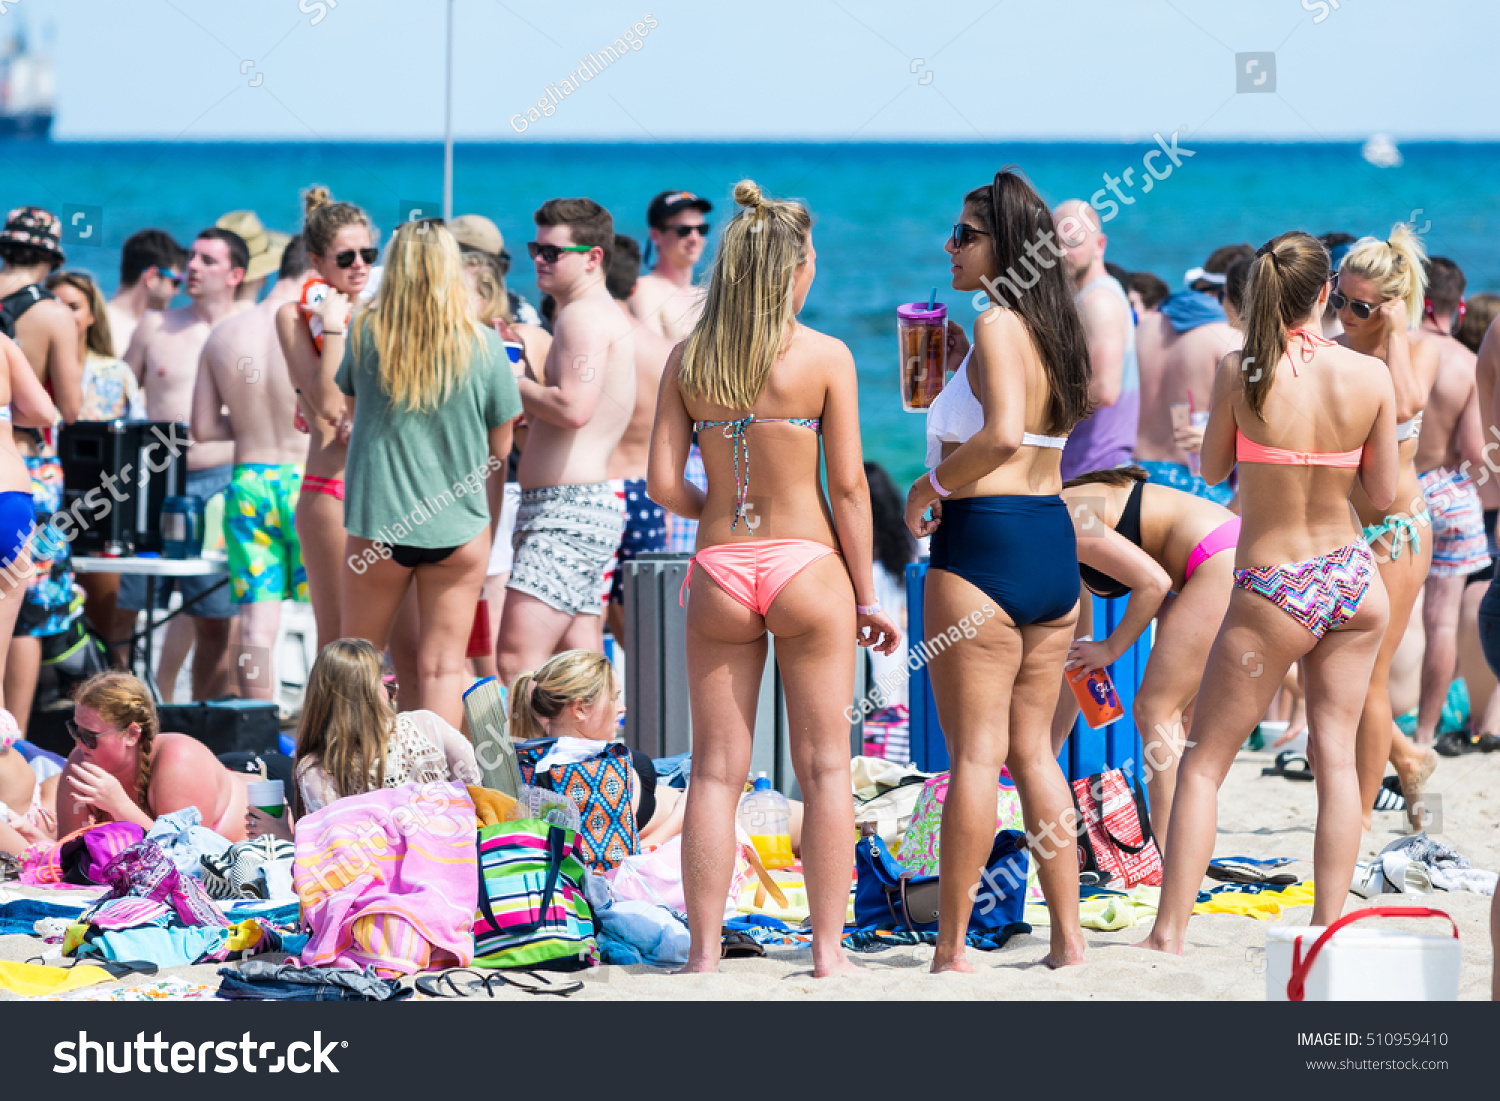 FORT LAUDERDALE, FL - JANUARY 2016: Boys and girls enjoy the beach on a